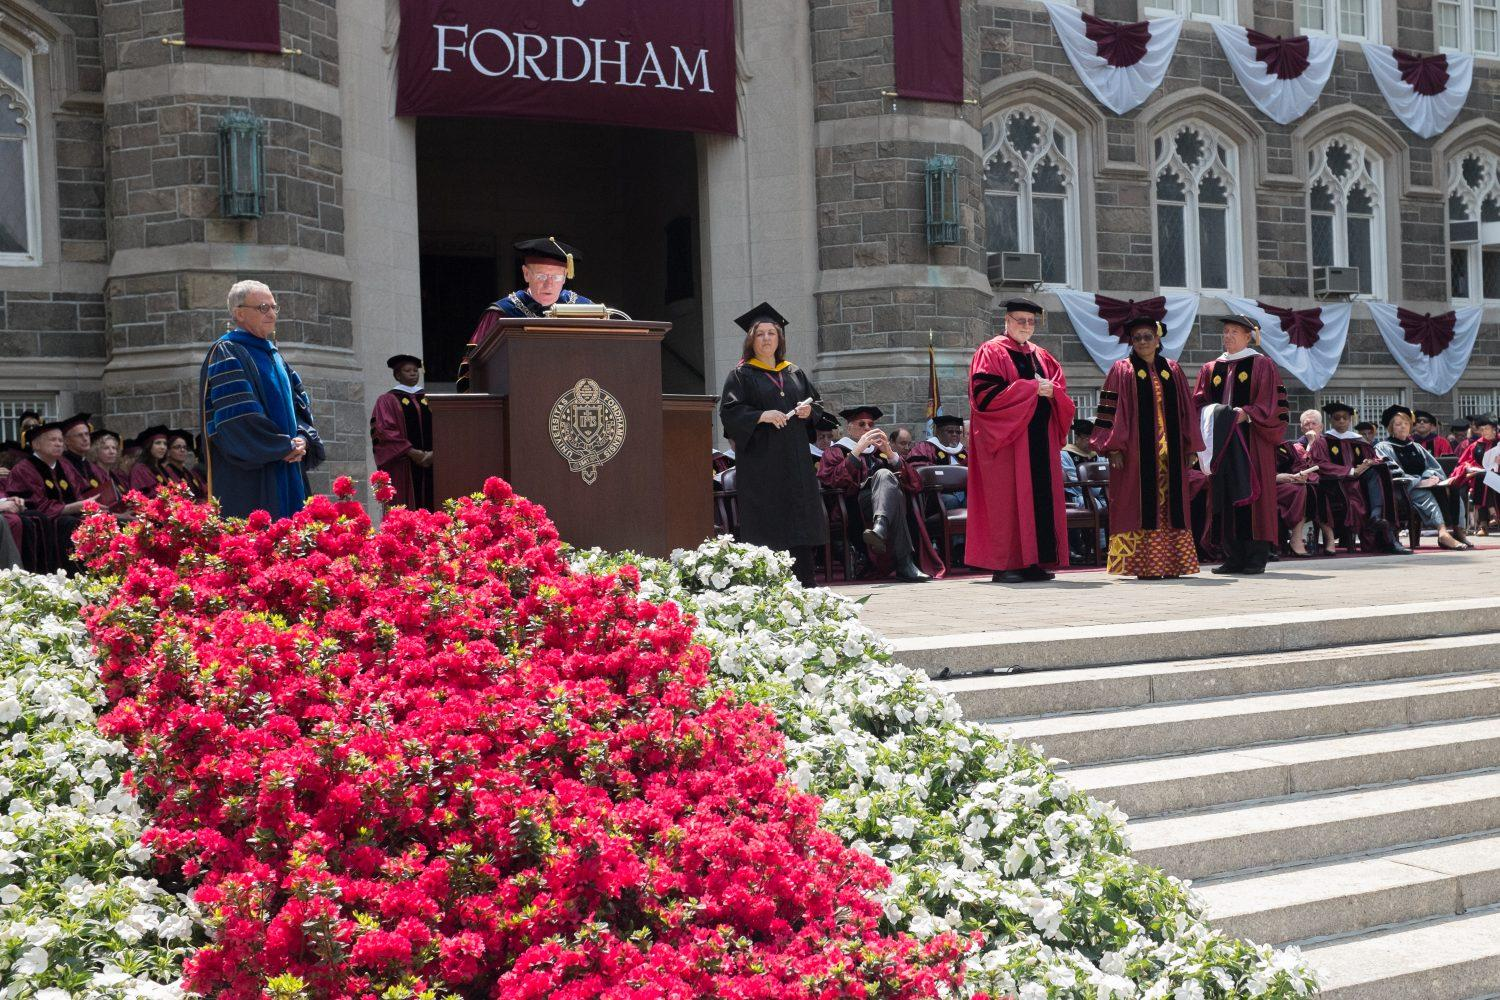 Smithsonian Head to Speak at 2016 Commencement